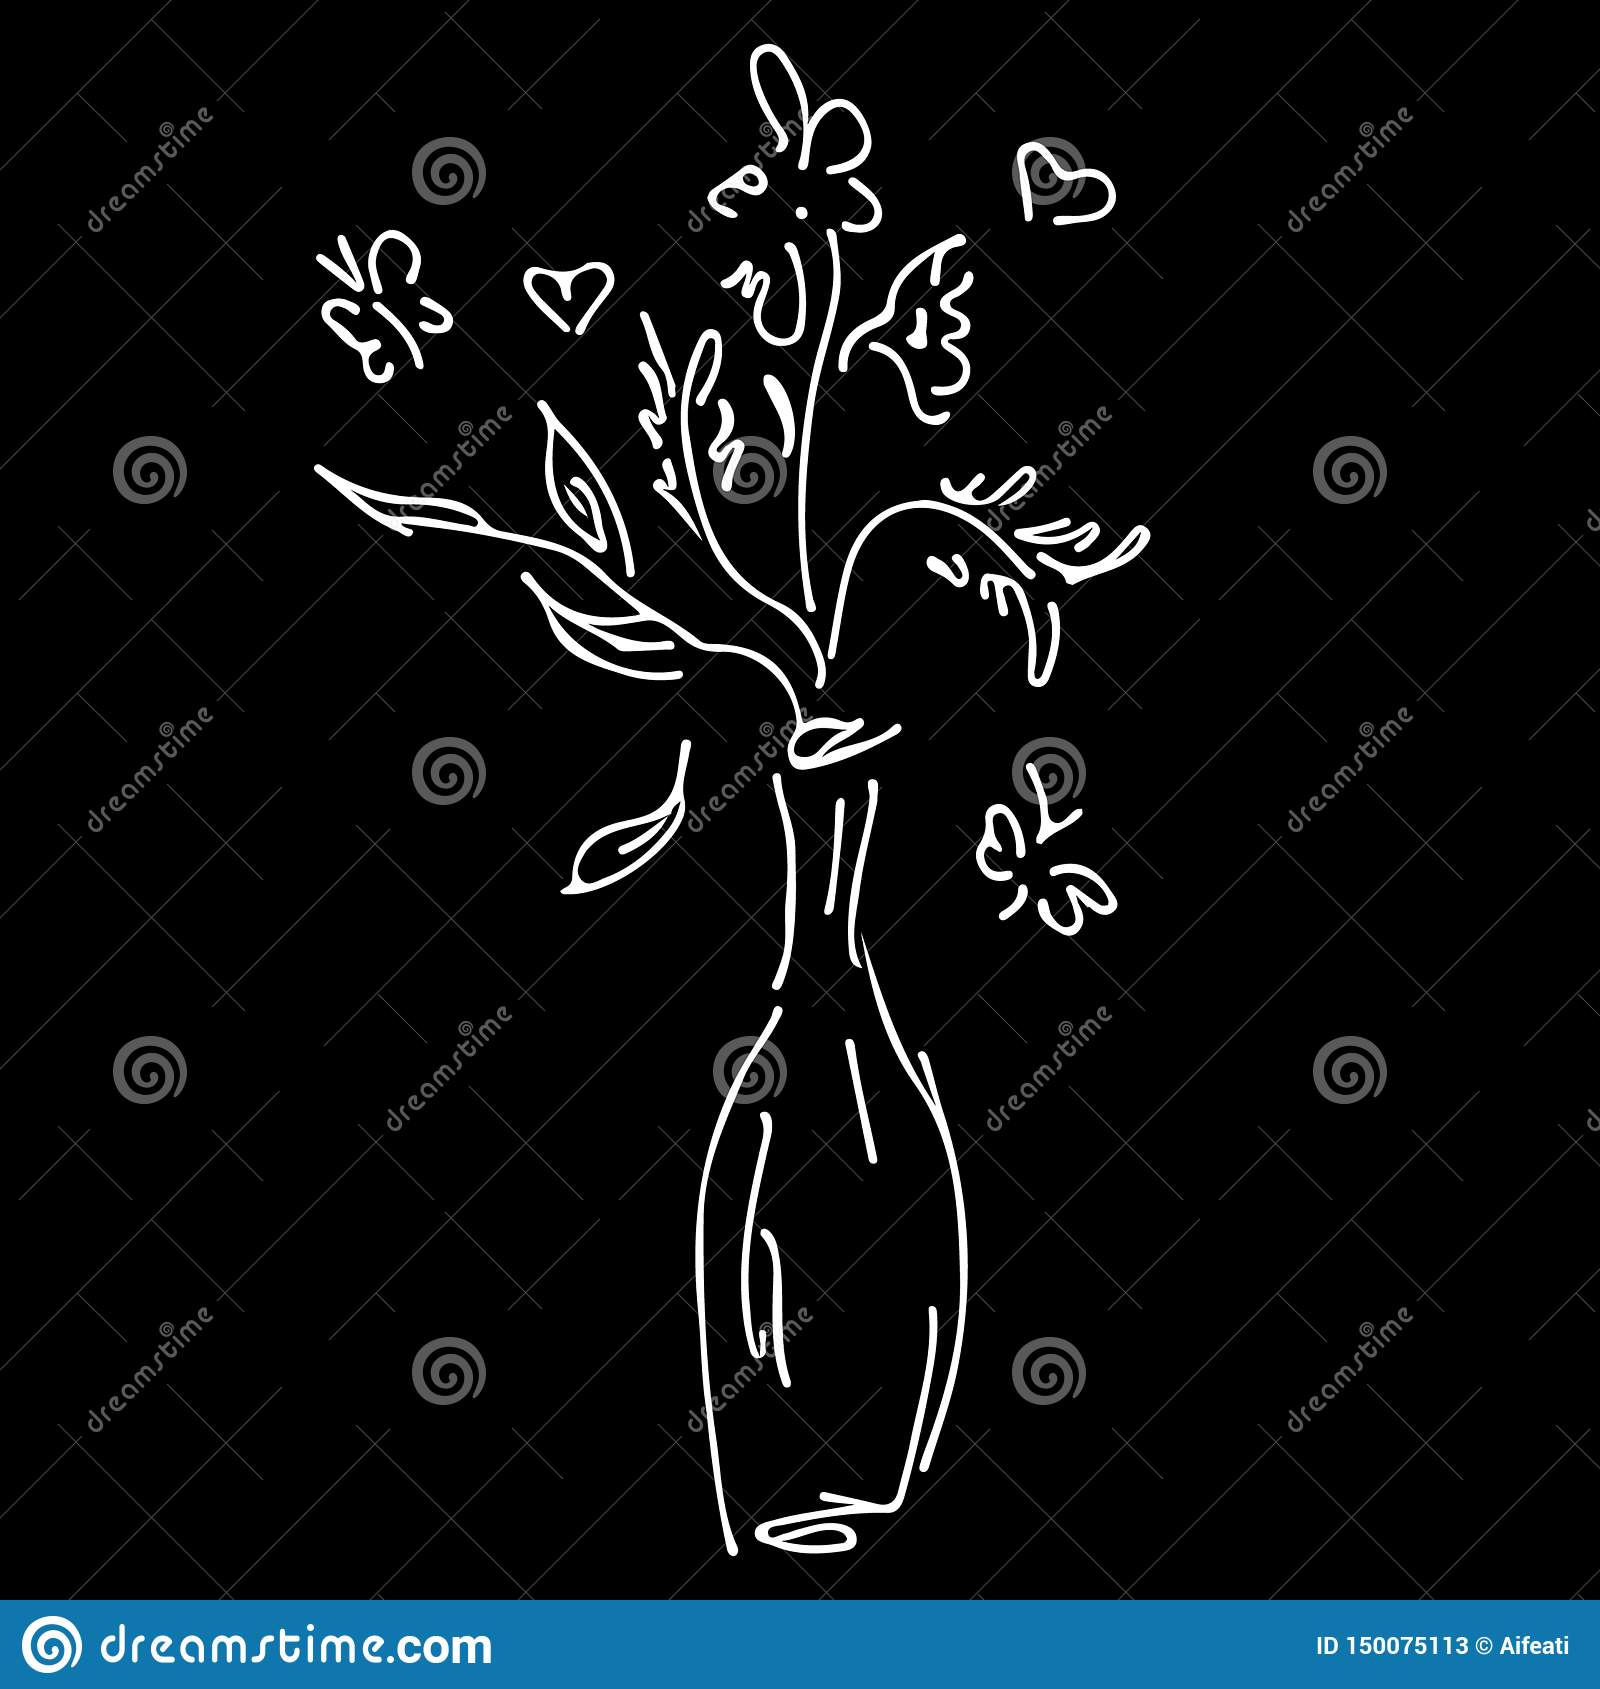 Abstract wild flowers bouquet isolated on black background. Hand drawn vector illustration. Outline icon